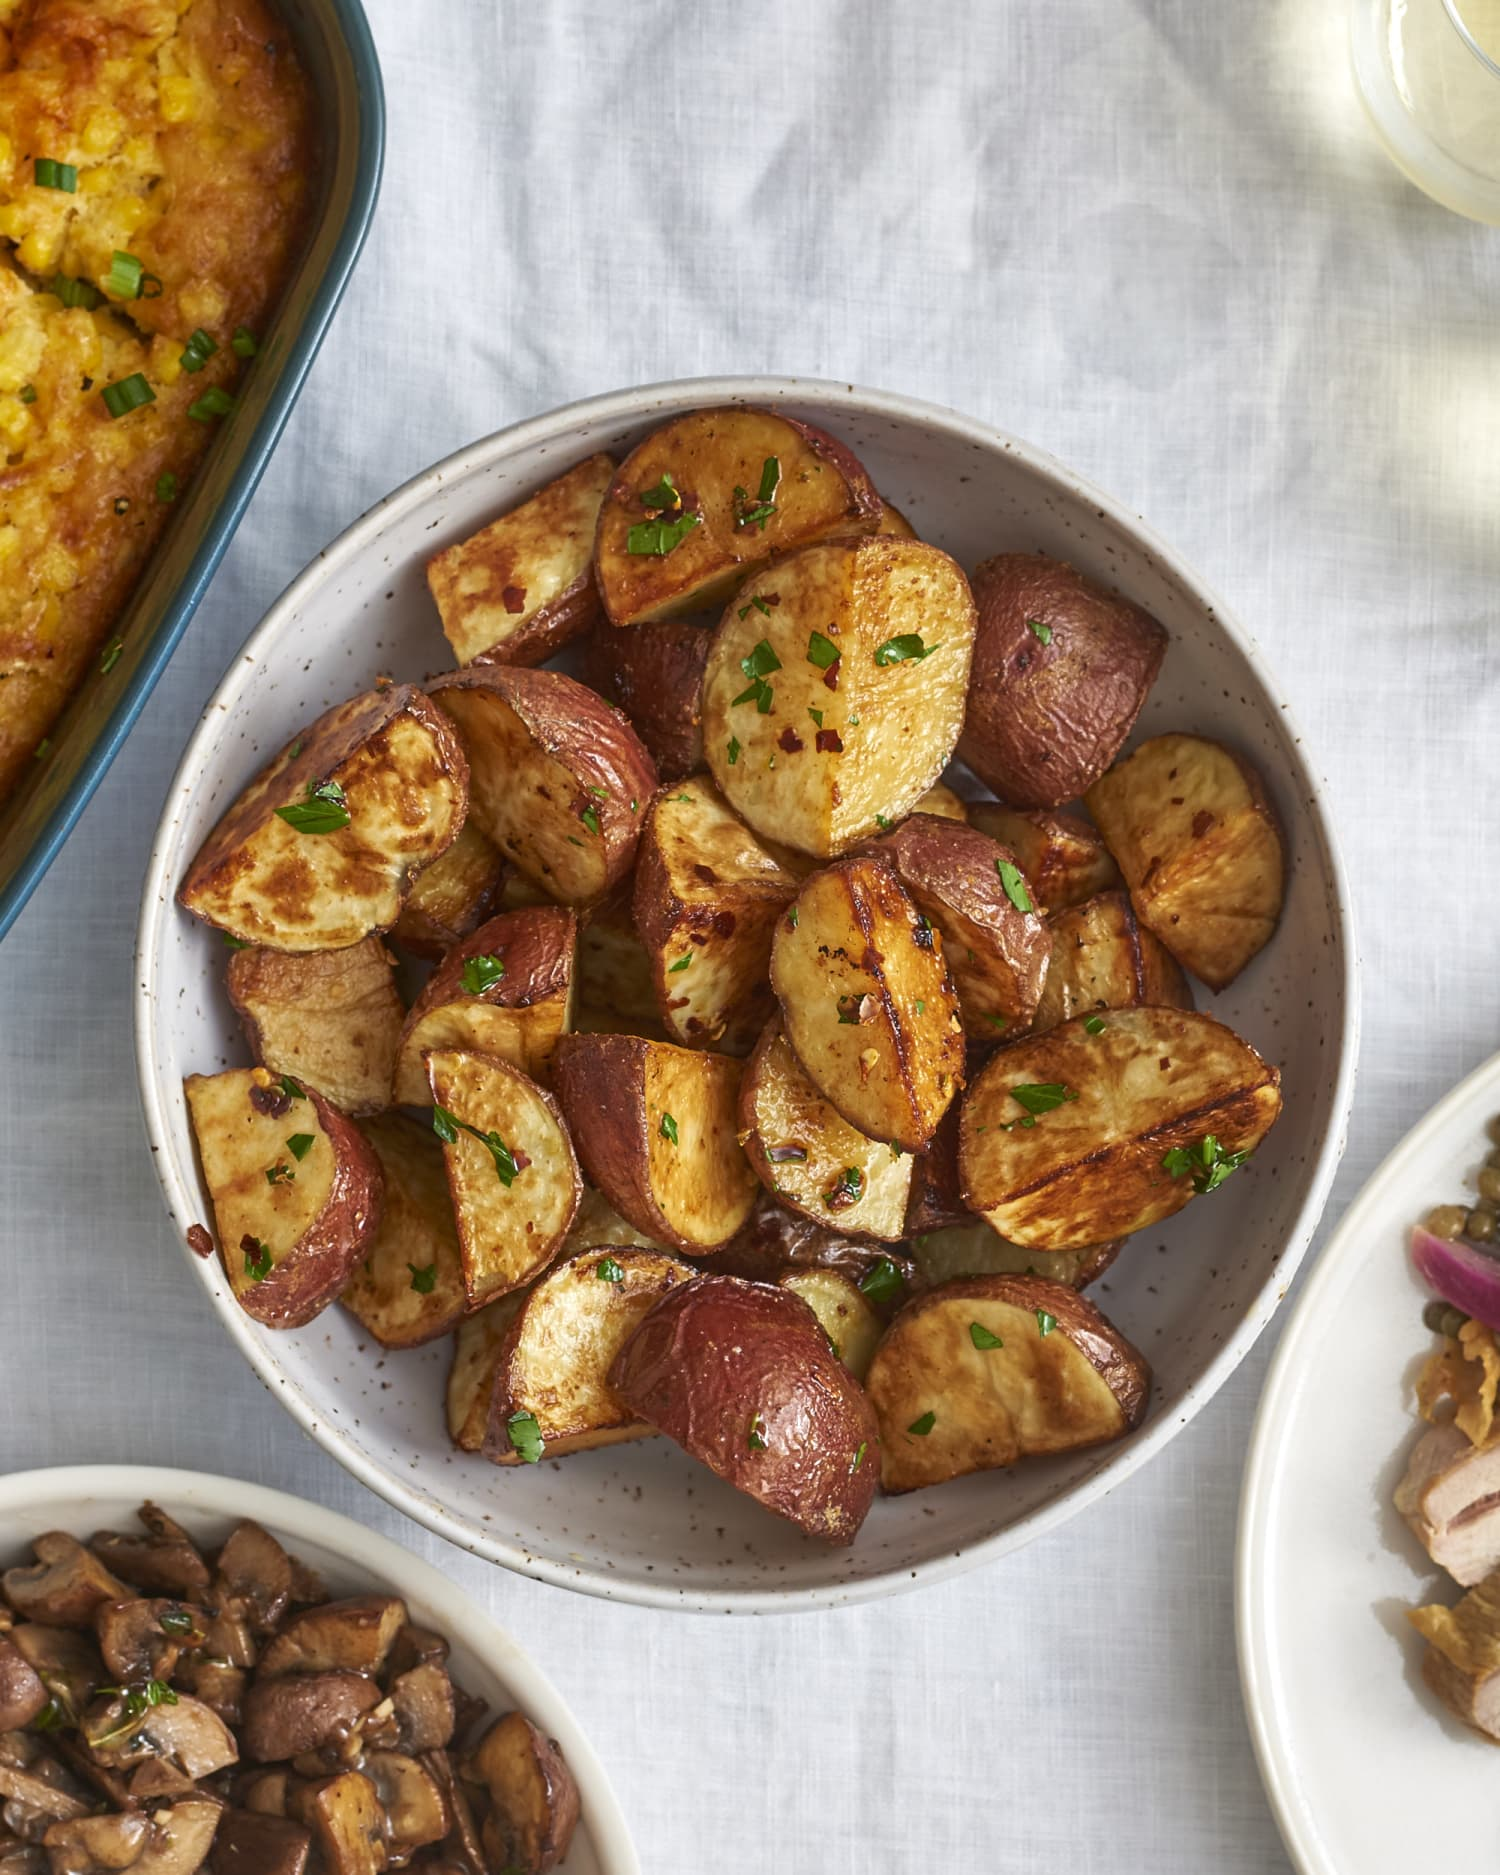 10 Potato Sides That Every Home Cook Should Know